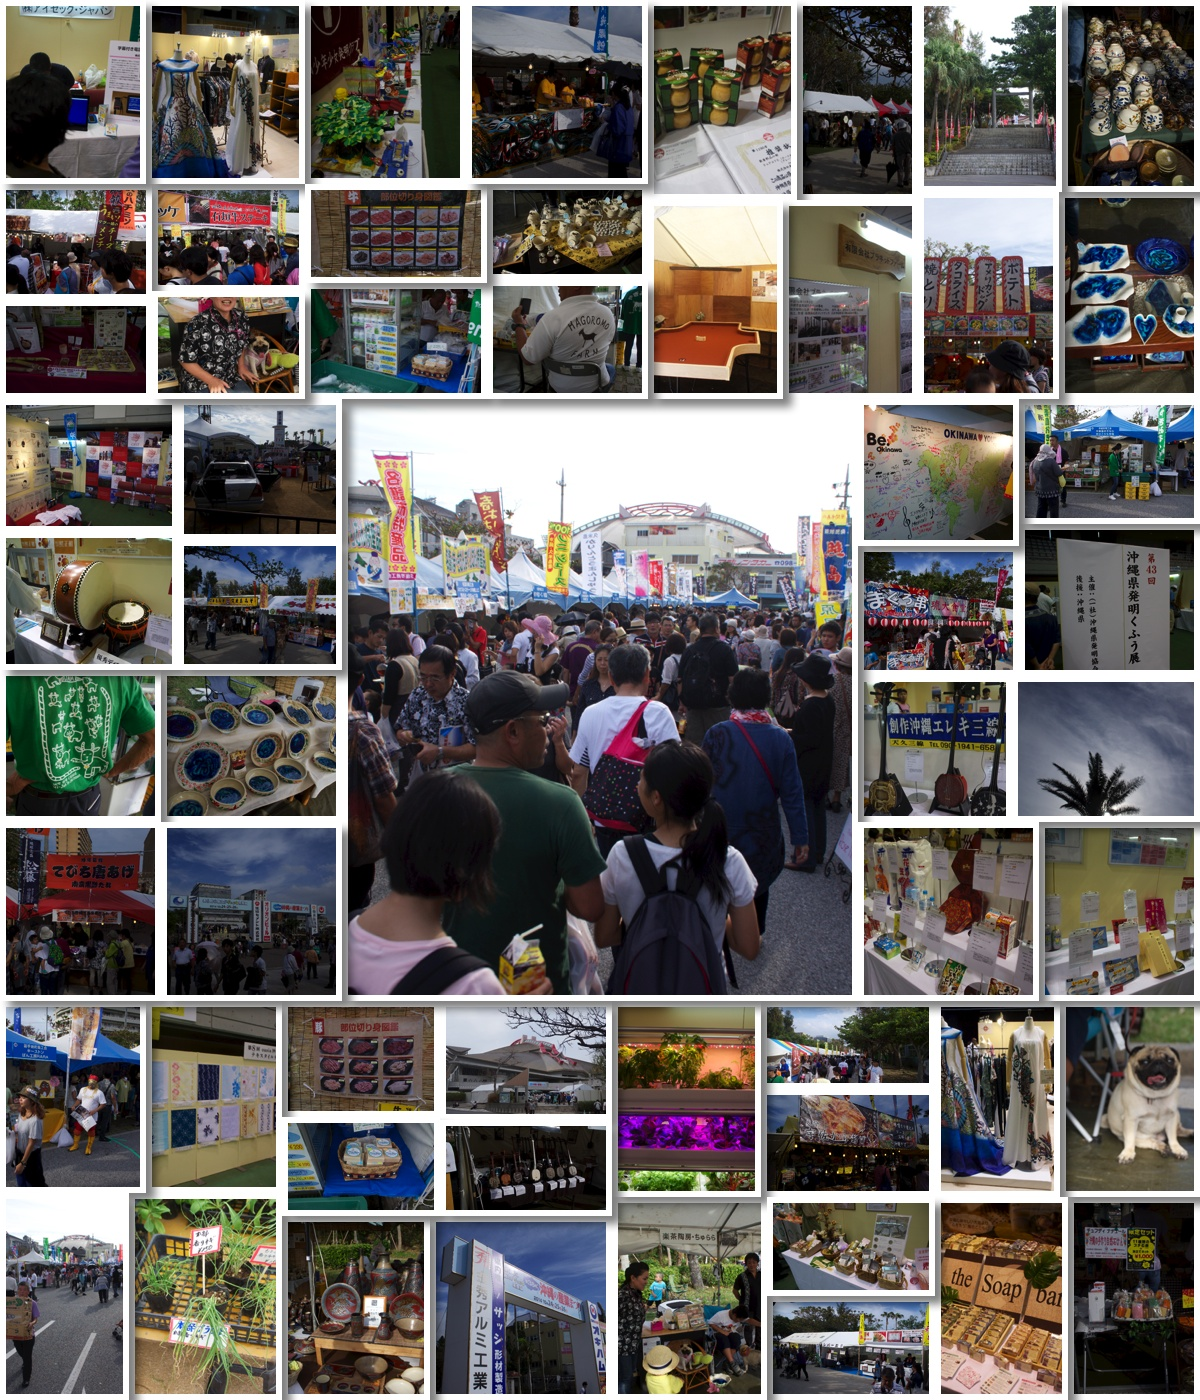 collage01_osf2014.jpg